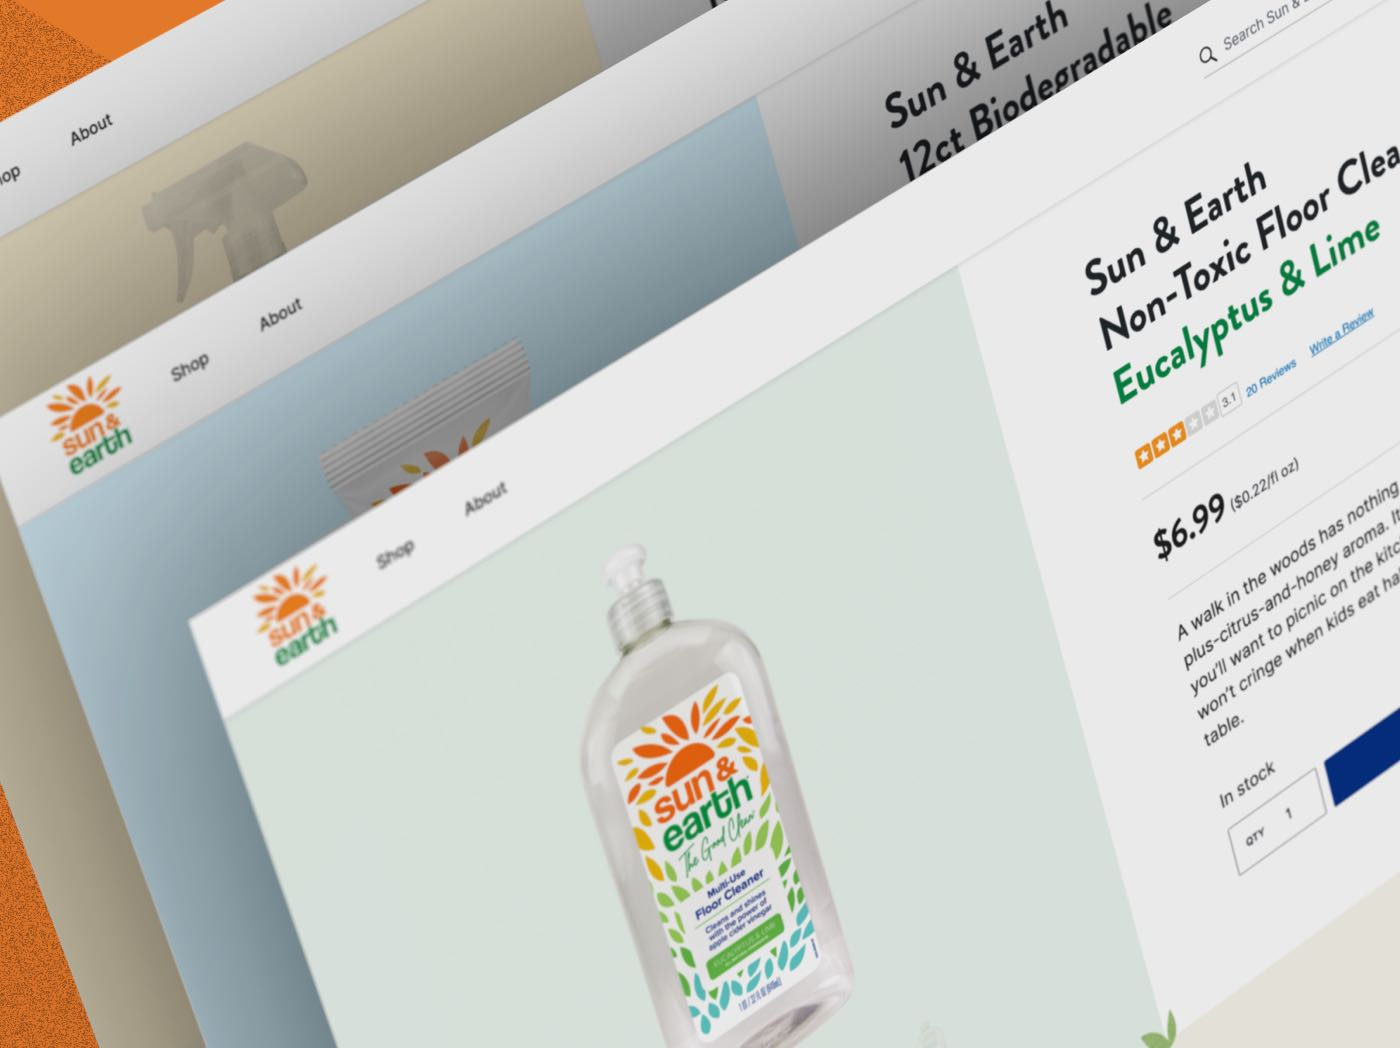 Sun & Earth redesigned product pages